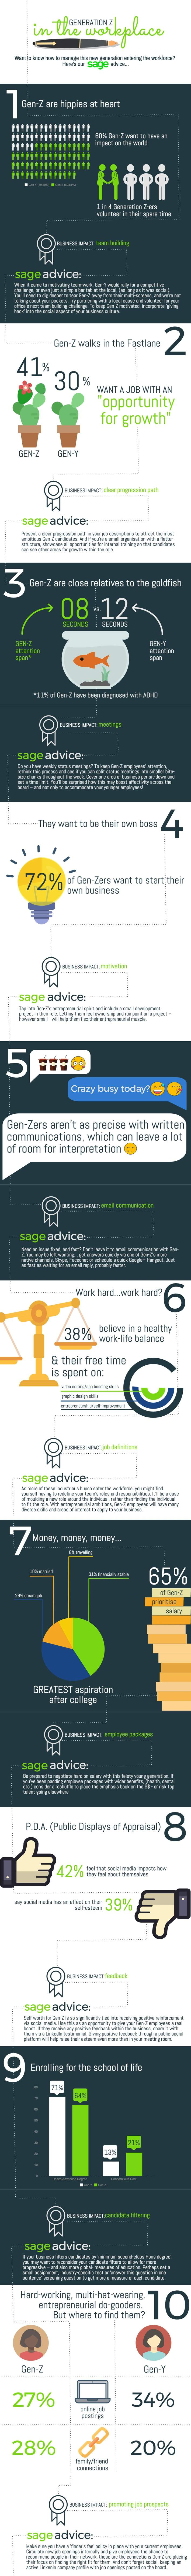 Generation Z in the workplace: 10 things you need to know - An infographic by Sage